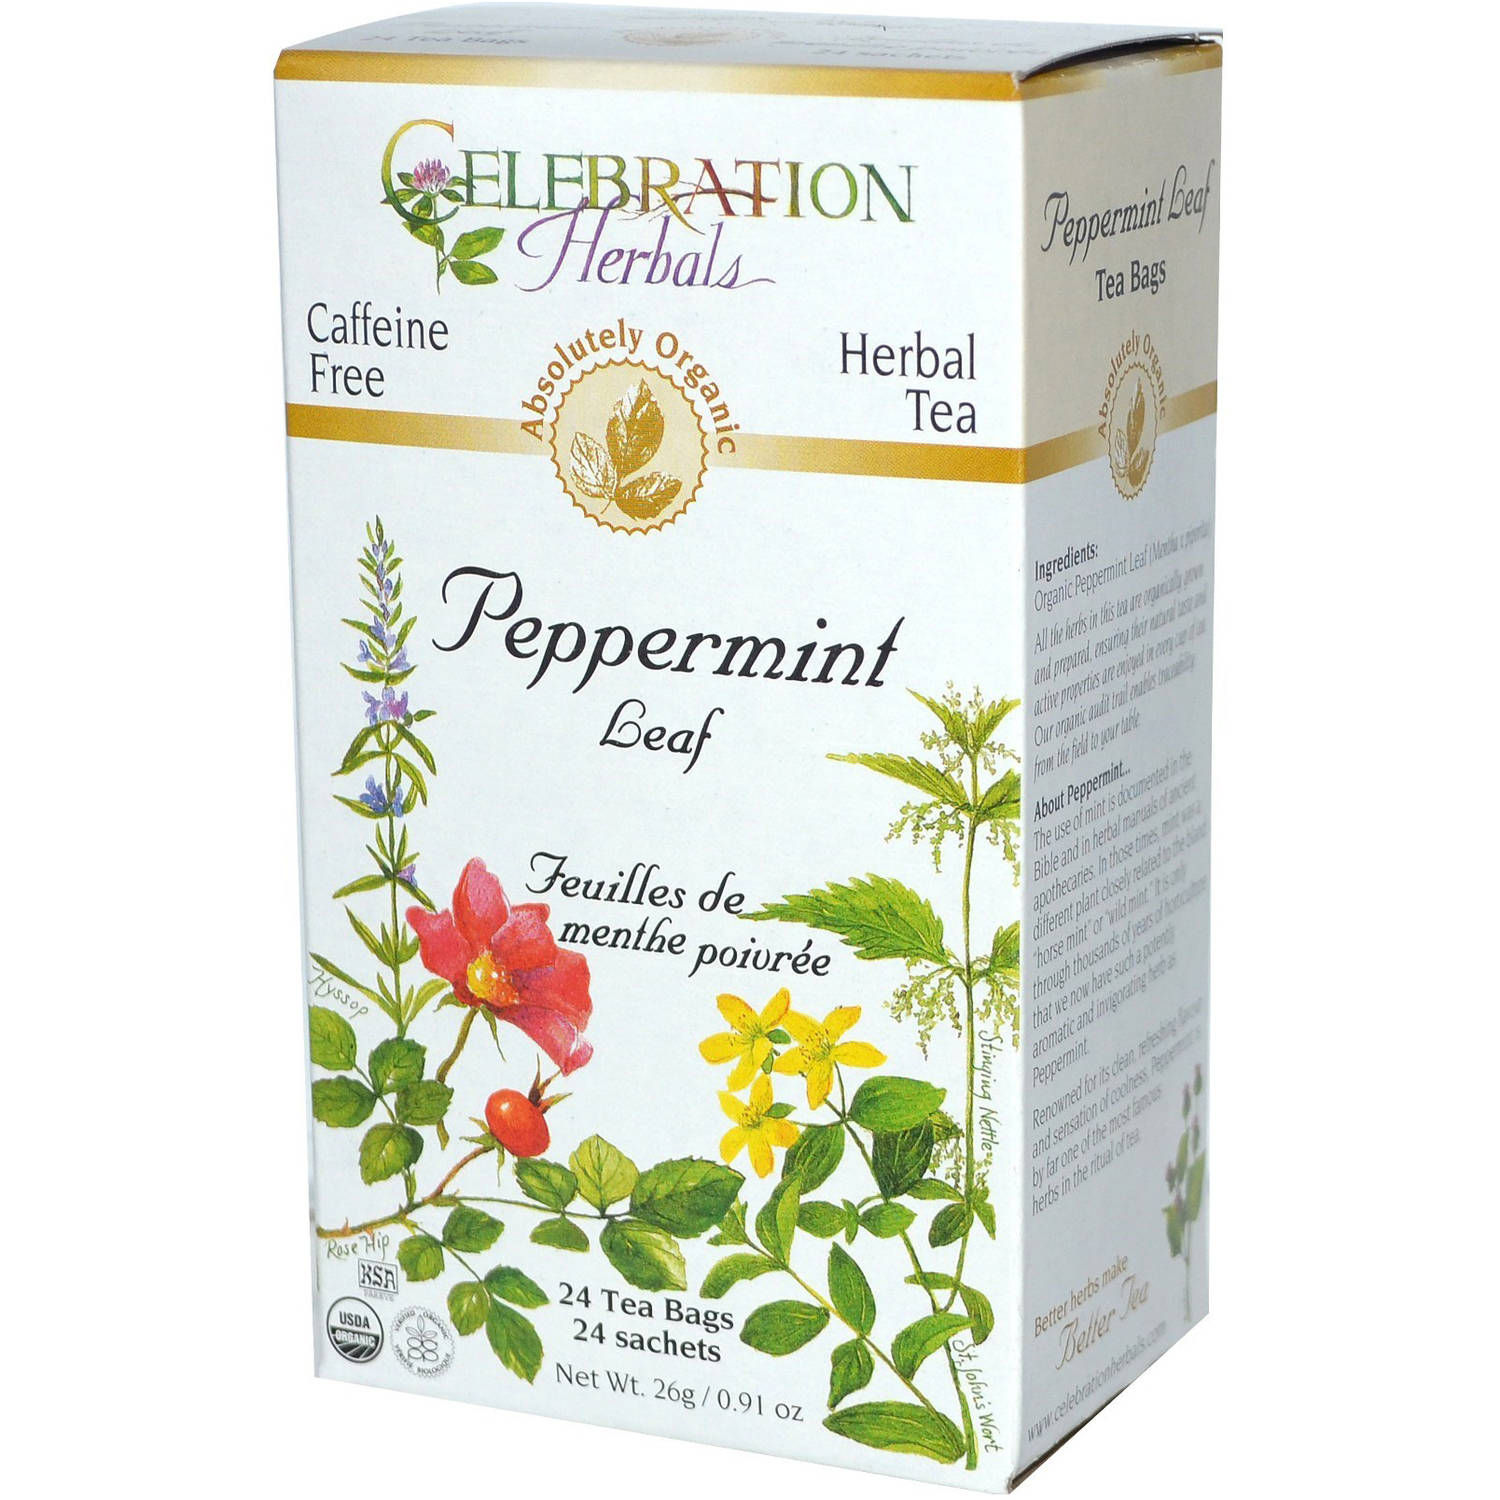 Generic Celebration Herbals Peppermint Leaf Herbal Tea Bags, 24 count, (Pack of 3)